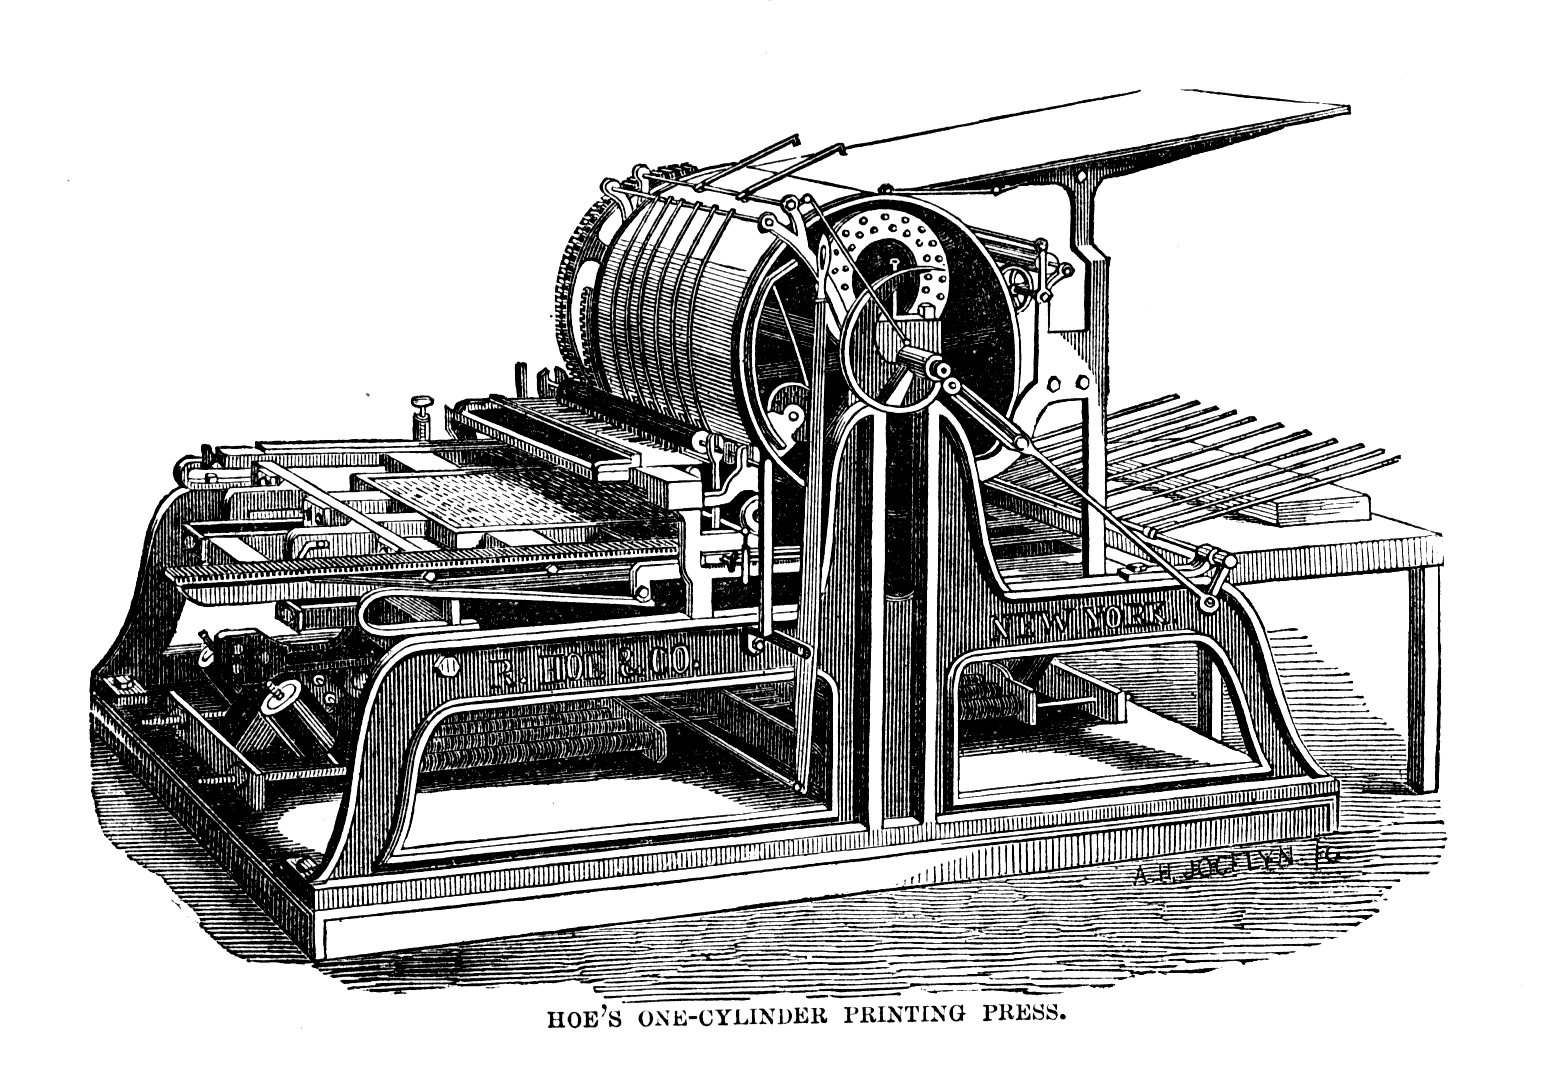 A Hoe press, of the type made famous by John McClanahan, editor of the Memphis Daily Appeal